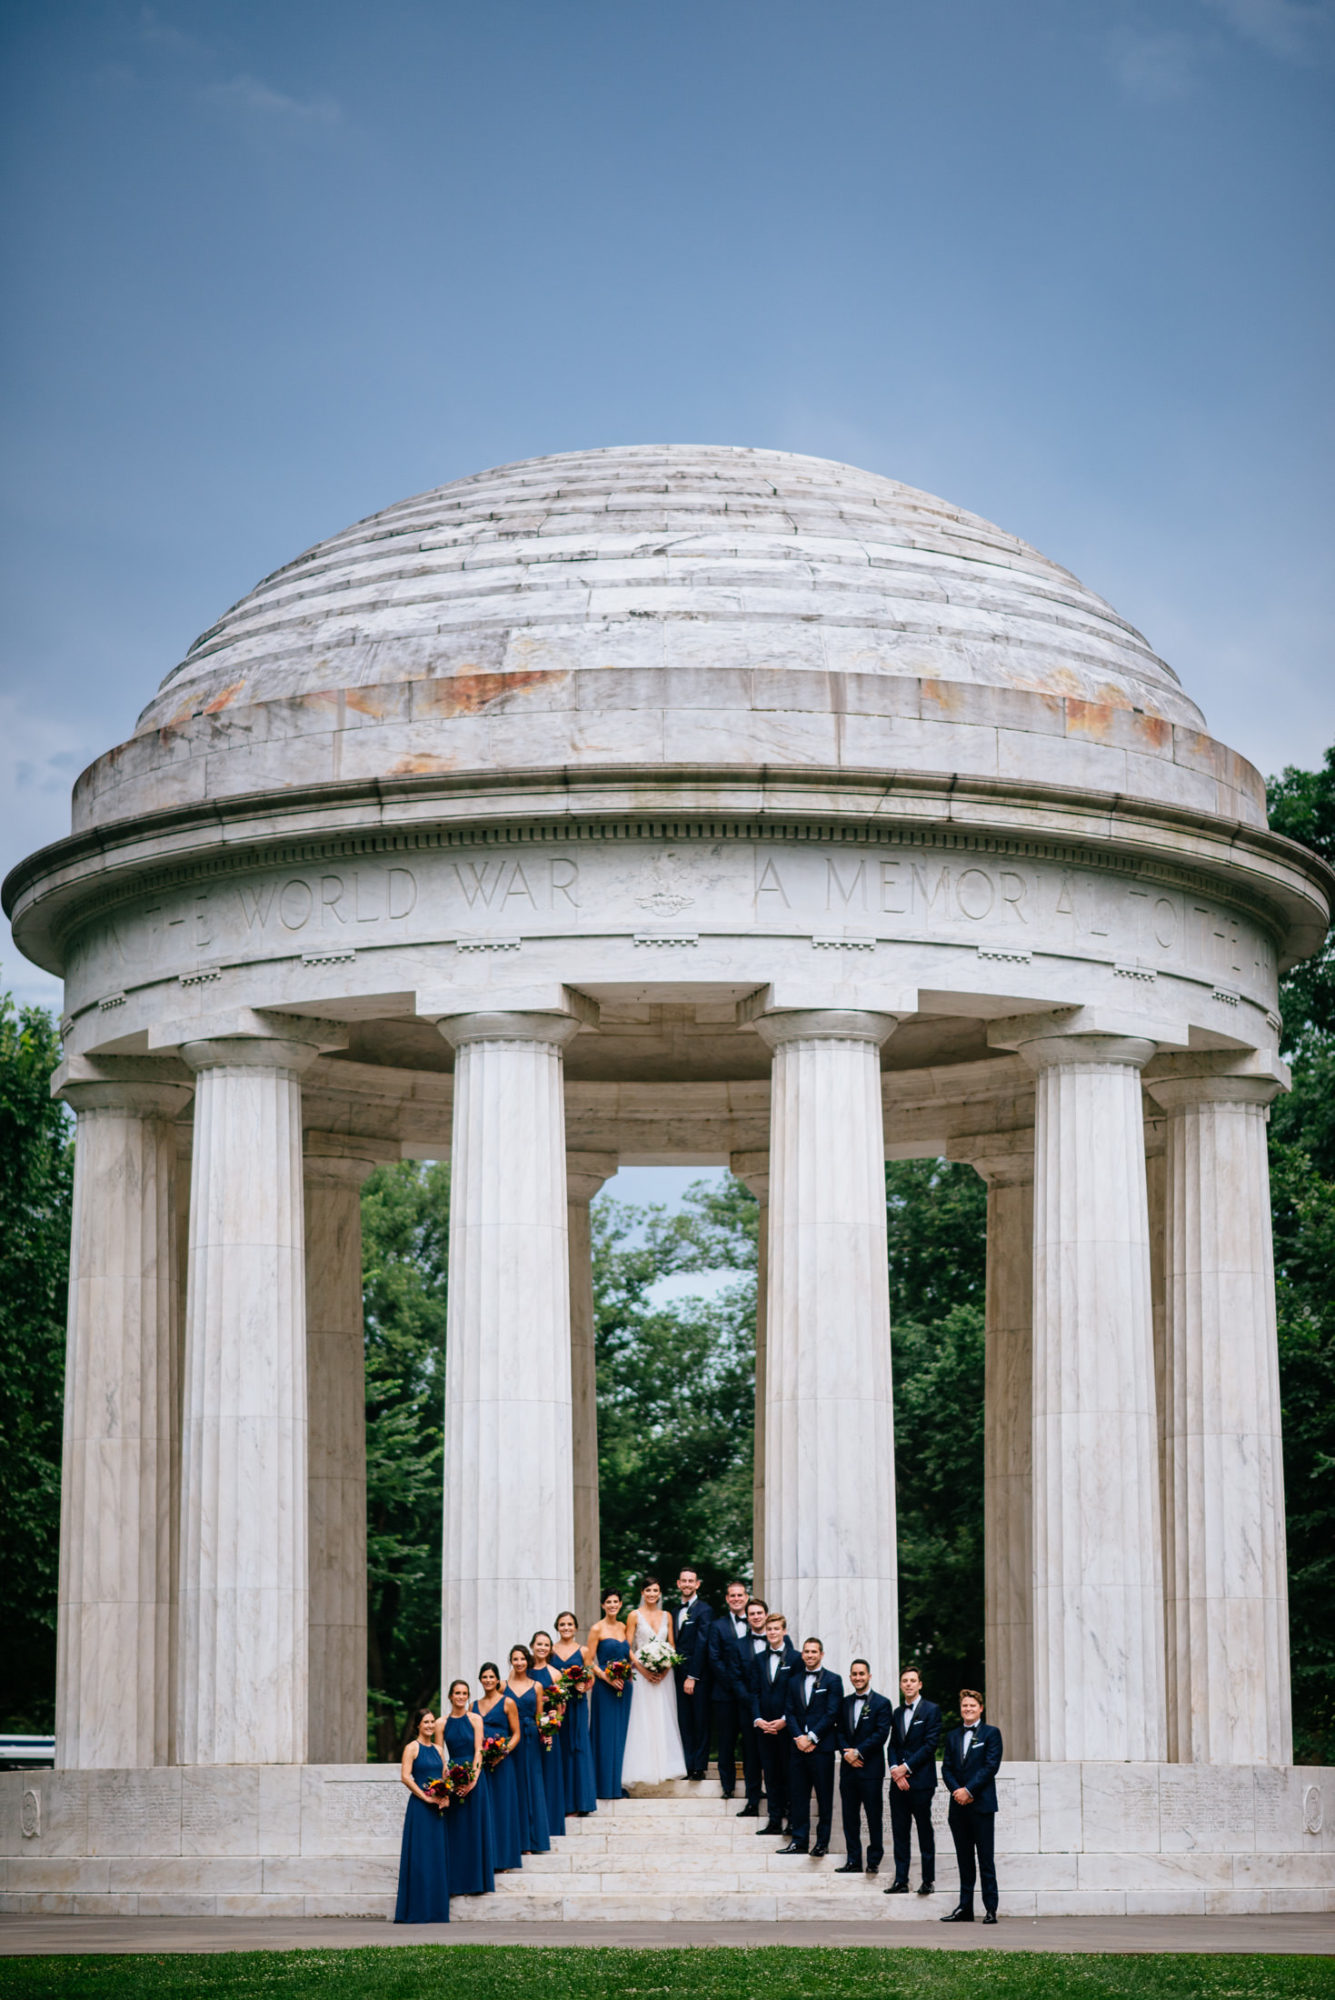 war memorial washington dc wedding party photo